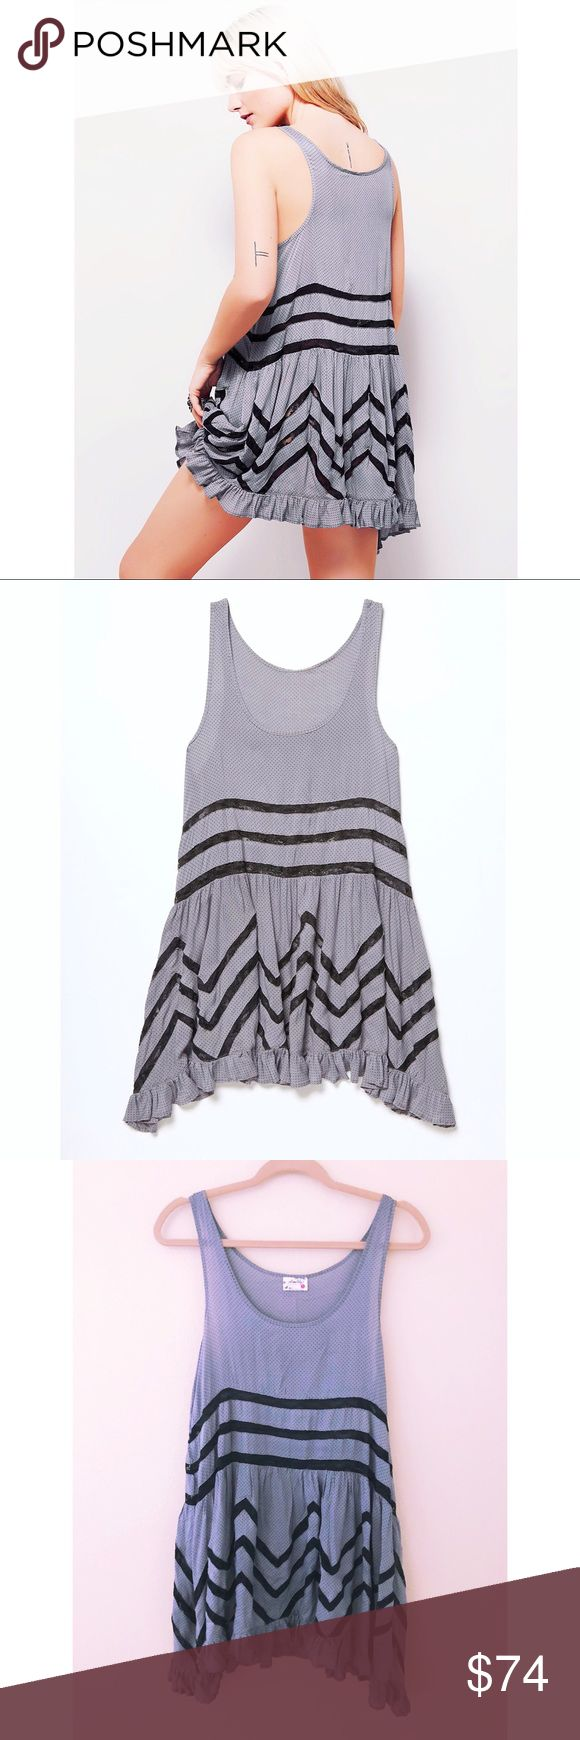 FREE PEOPLE Voile Slip Perfect condition. grey polka dot trapeze dress with black lace. Free People Dresses Mini